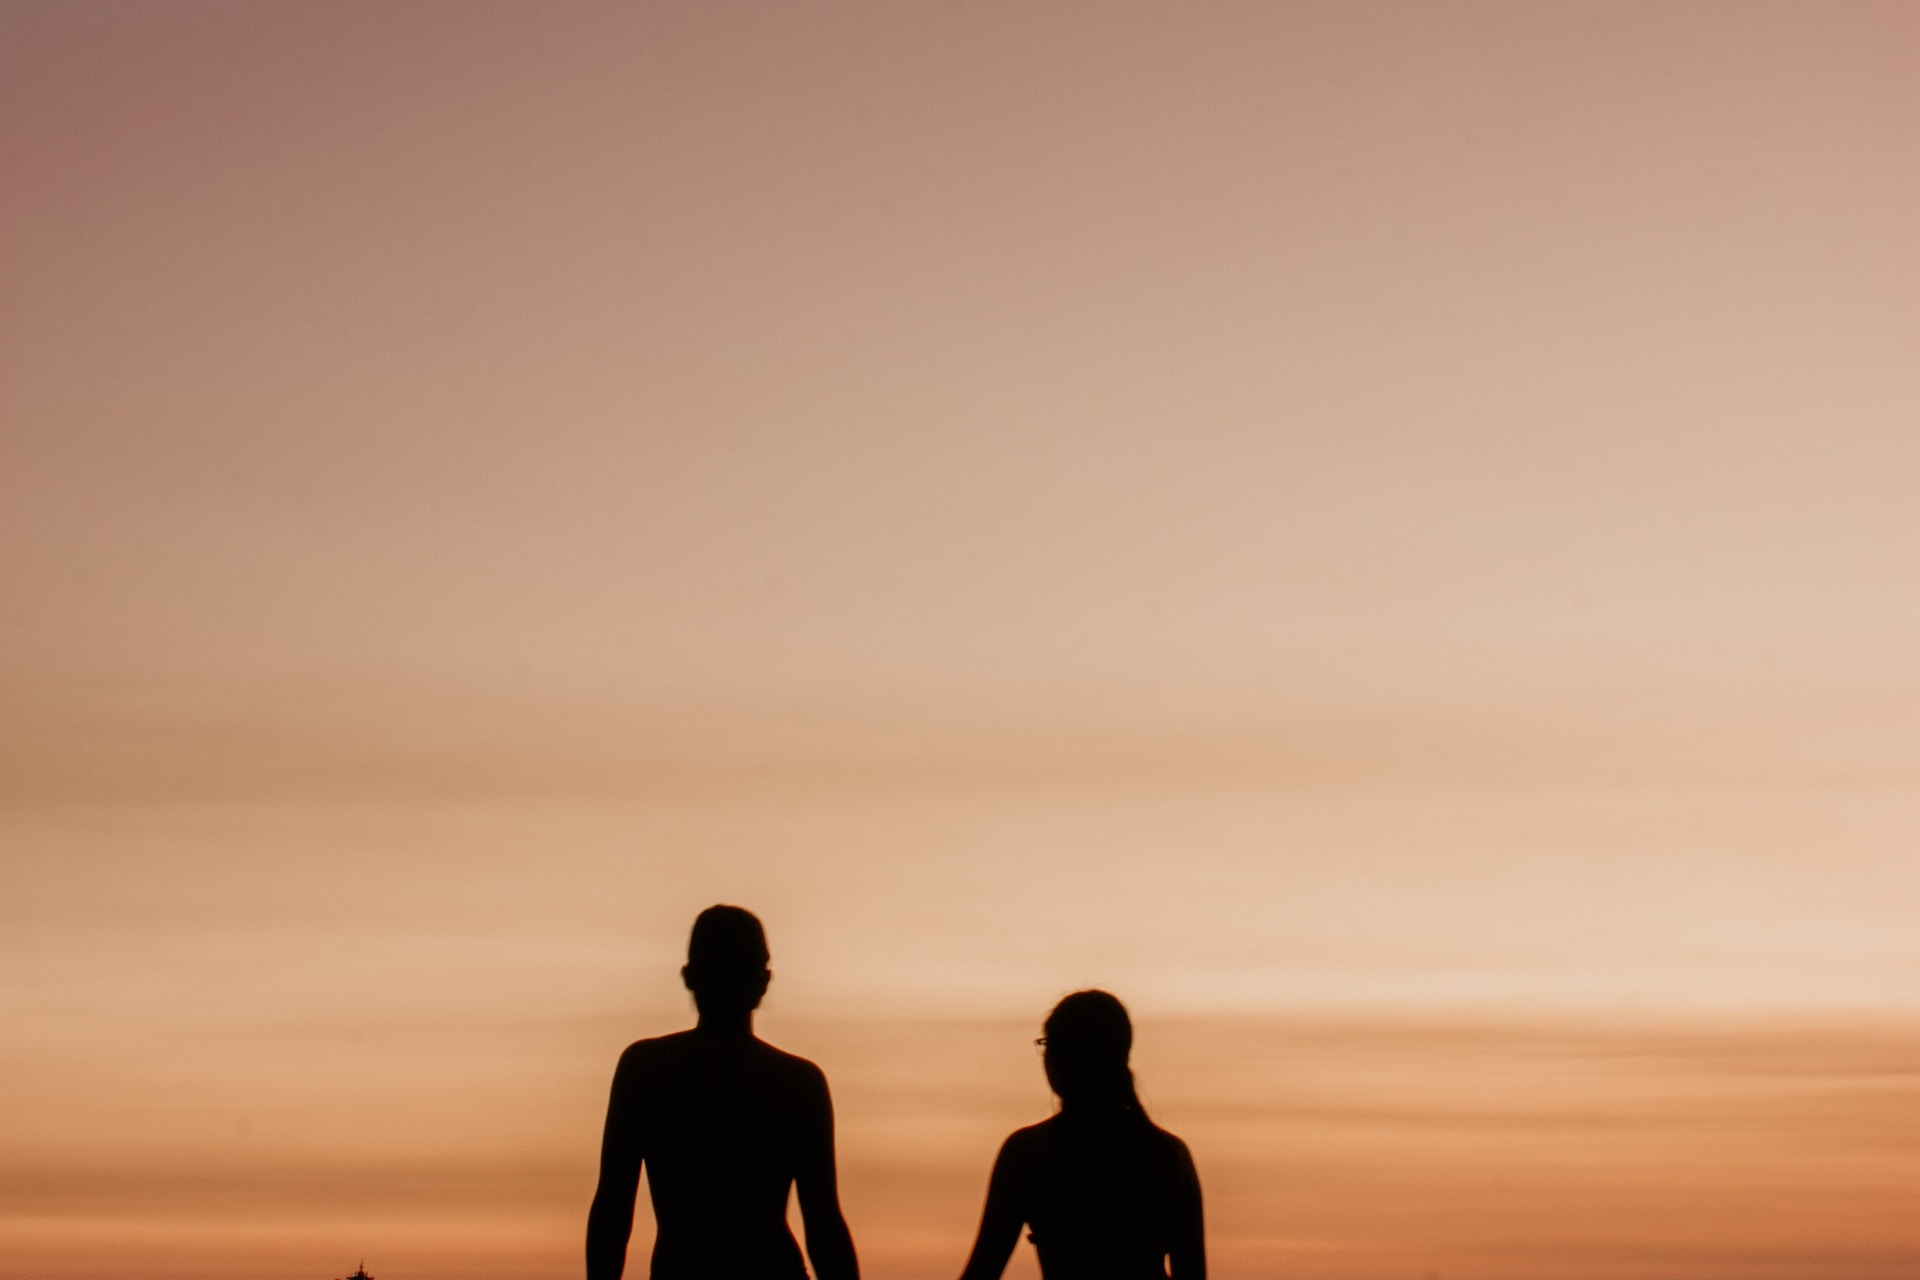 silhouette of 2 men and woman standing on seashore during sunset